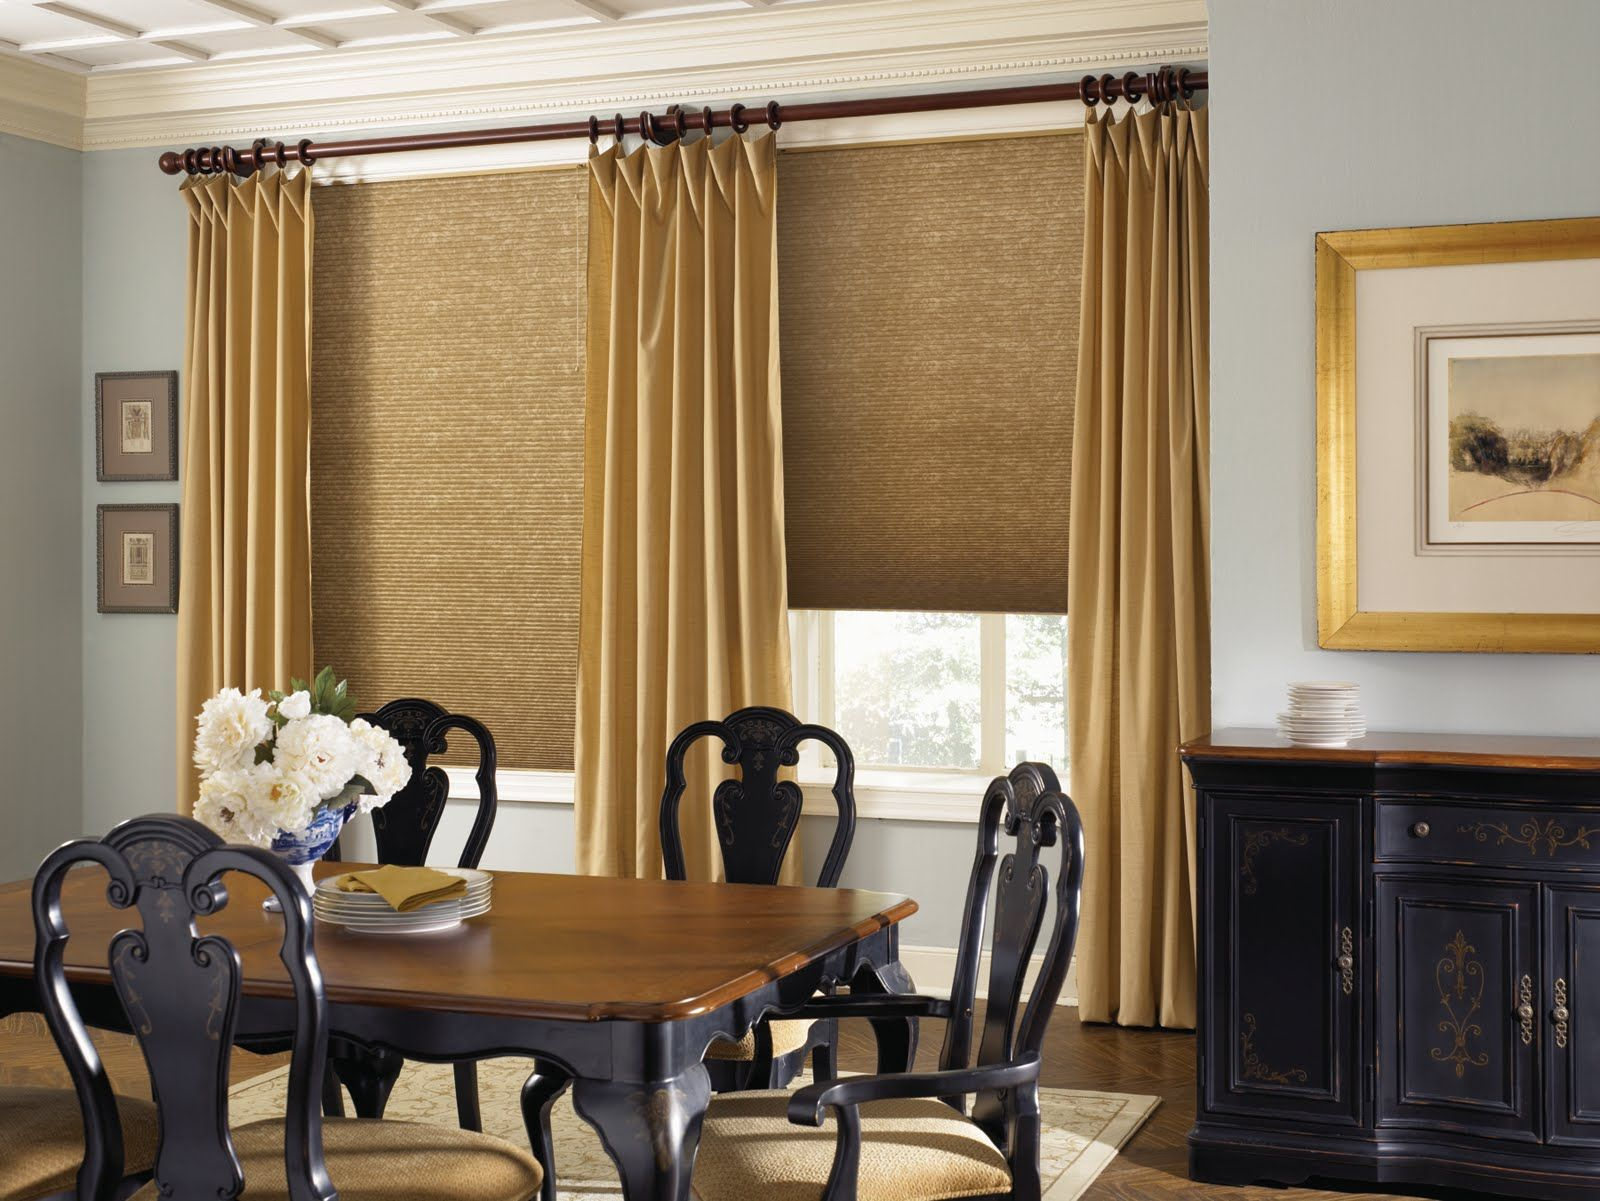 Interior, Honeycomb Window Shades With Gold Accent Curtains Classic Black  Wood Dining Chairs With Large Wood Top Table Big Nature Photography With  Gold Tone ...